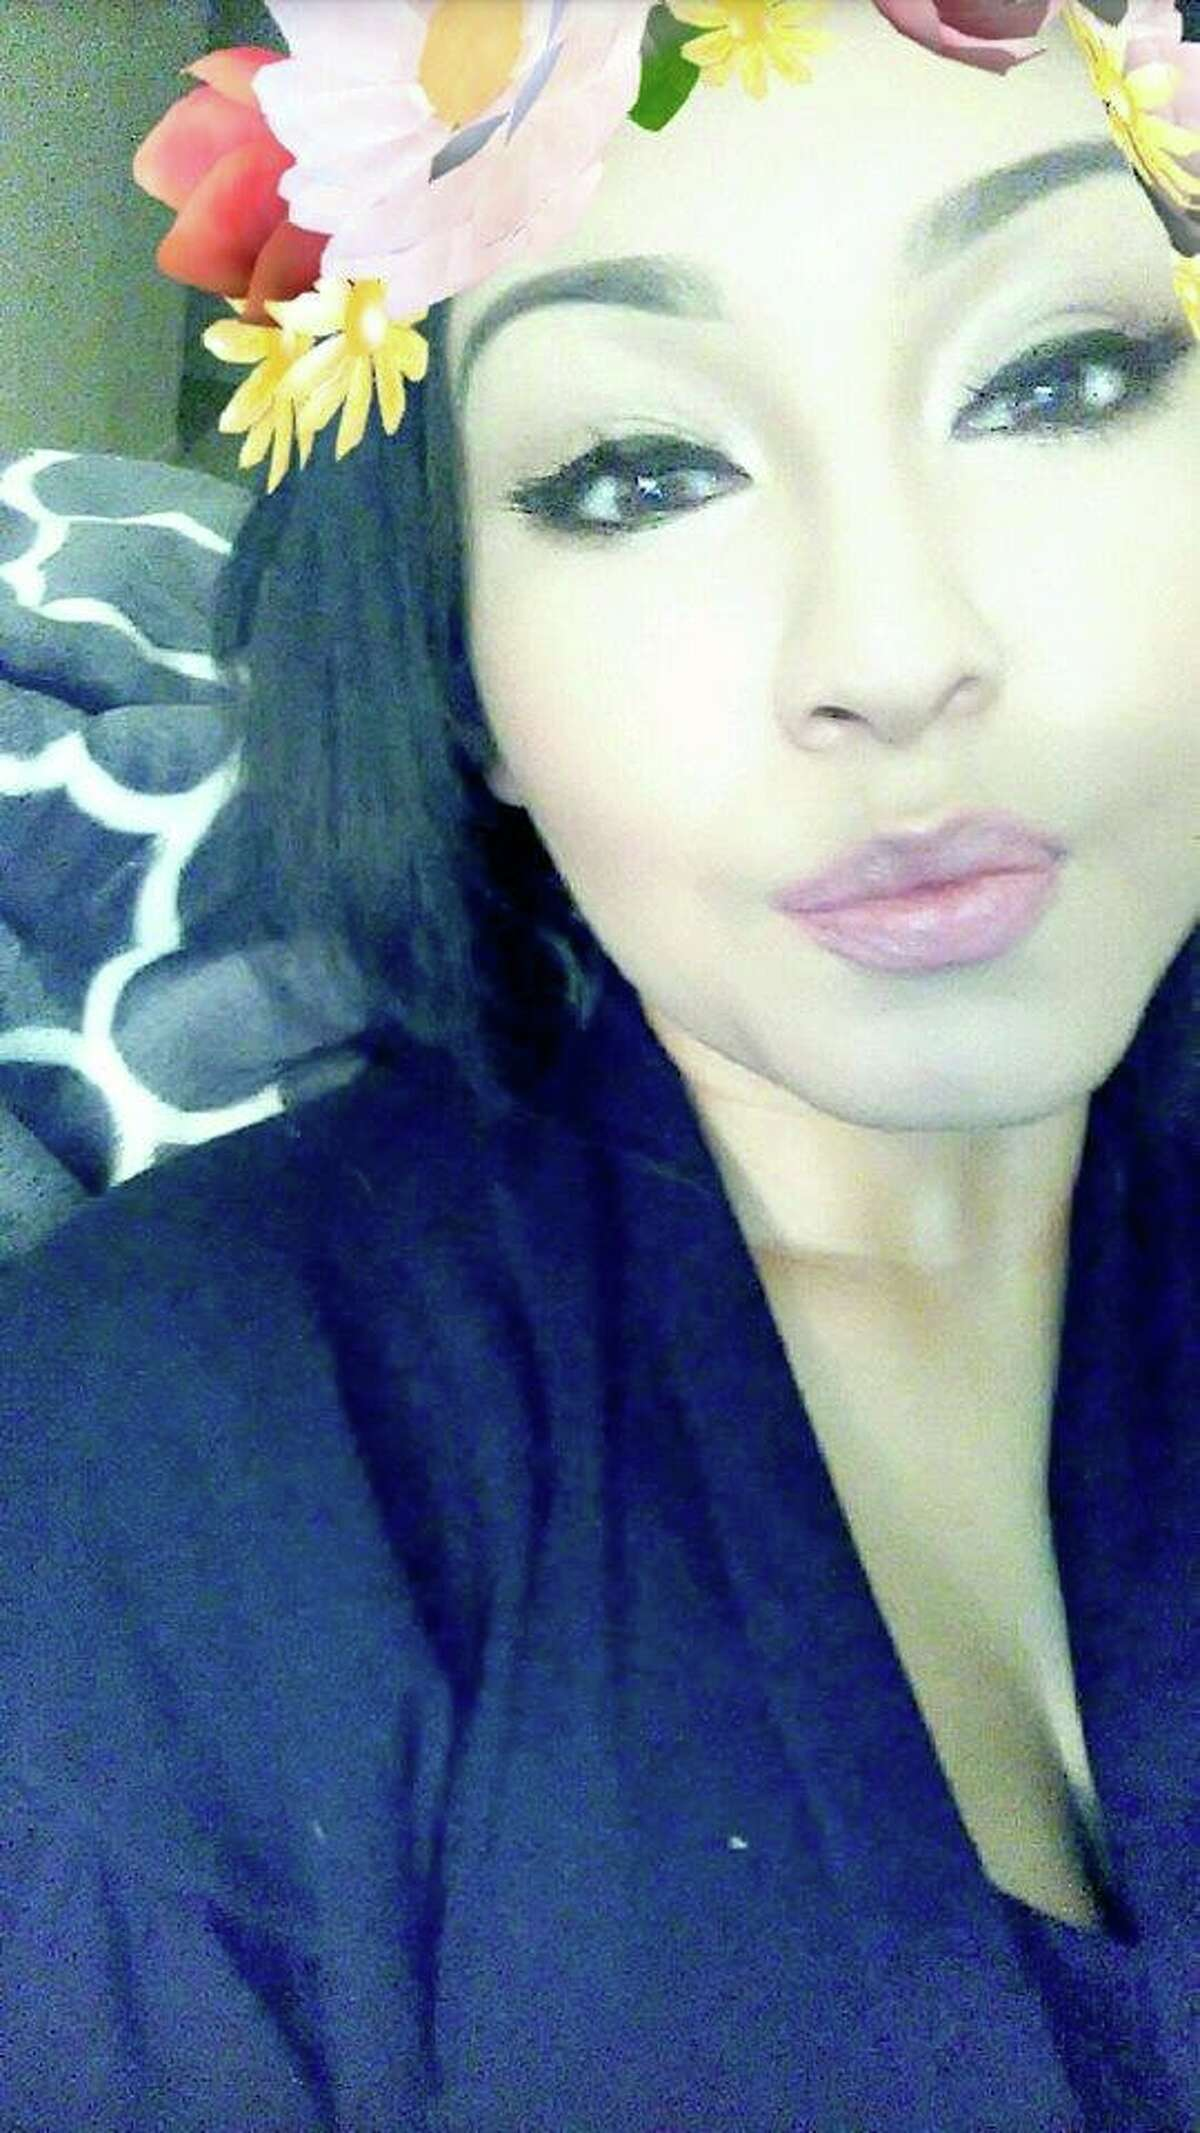 Fort BendA woman whose body was found in a burning car in Fort Bend County County on Jan. 11, 2017 has been identified as 21-year-old Lorraine Diaz. In January 2018, Crime Stoppers offered a $15,000 reward for information on Diaz' death.